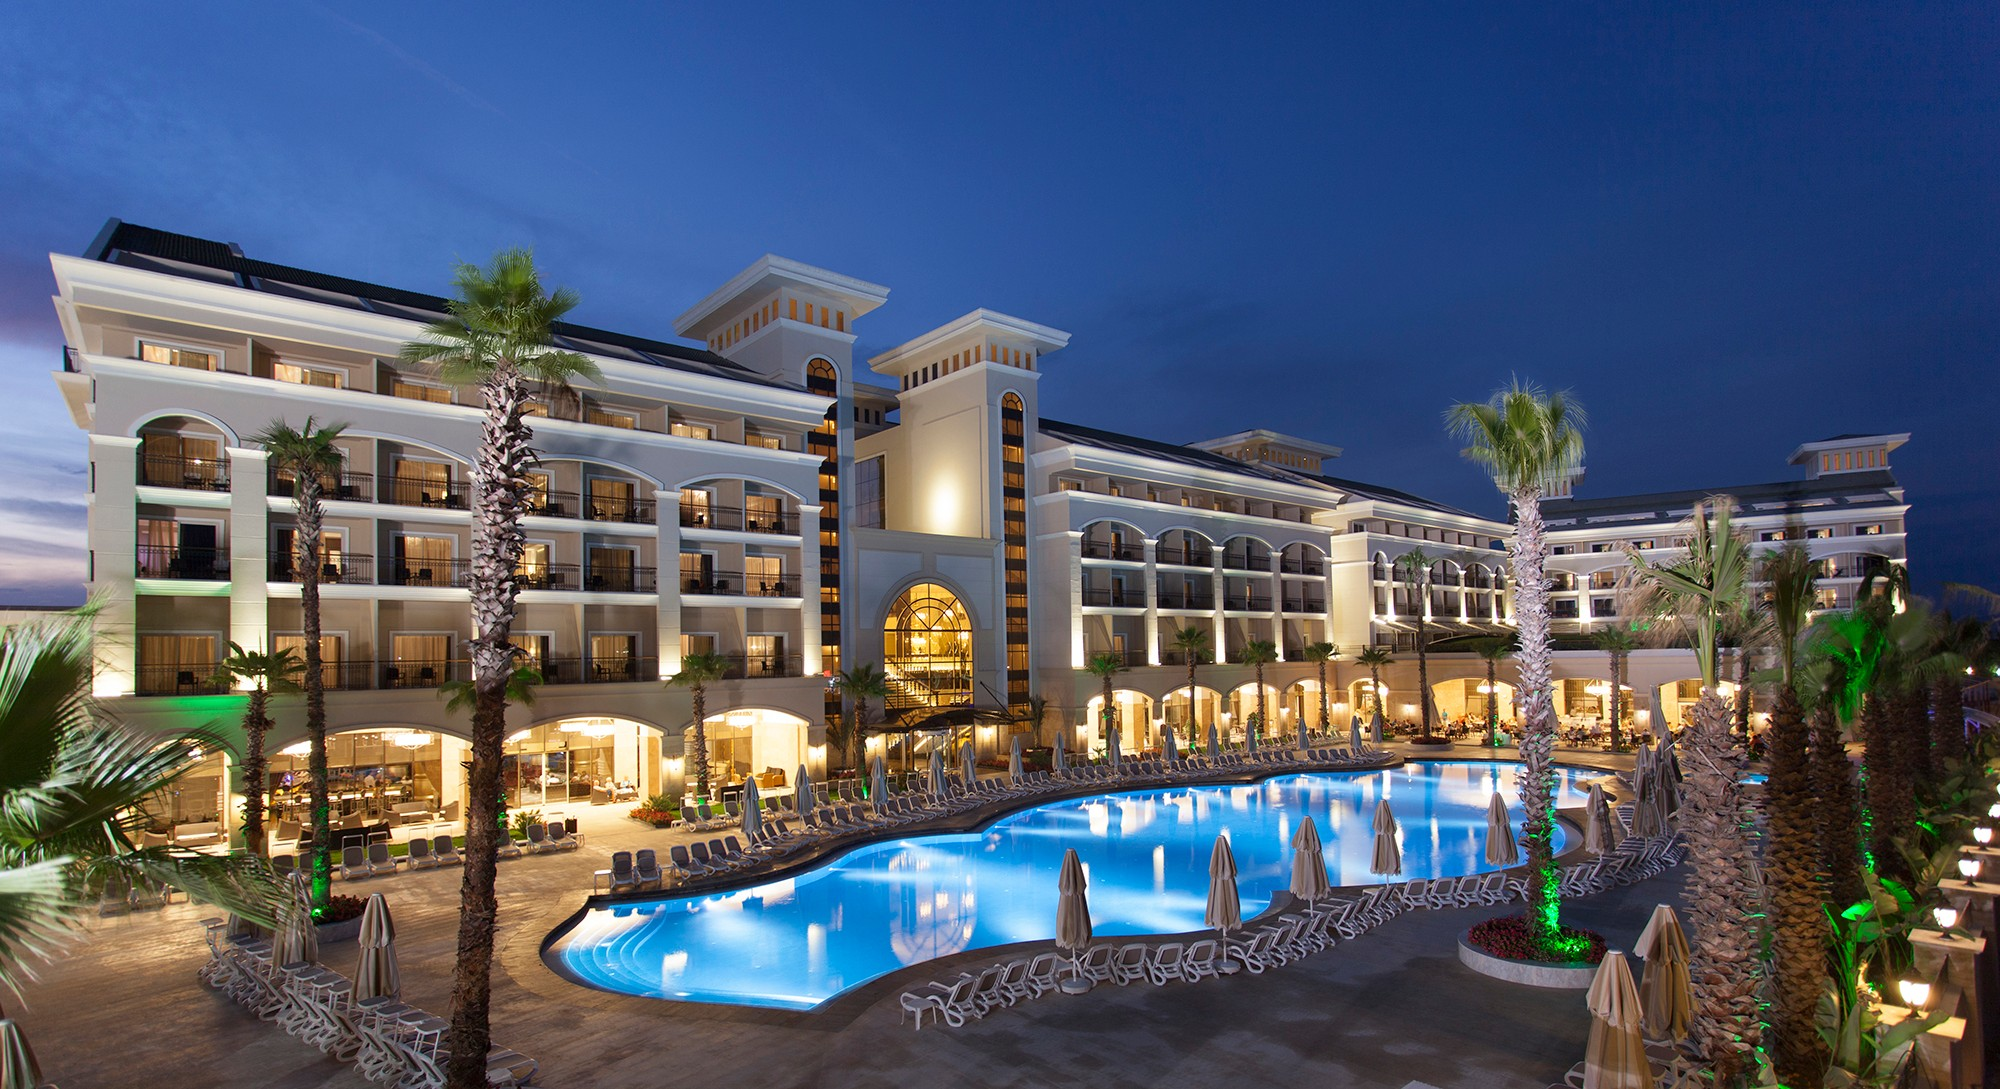 Alva donna exclusive belek unversal group for Exclusive hotel group